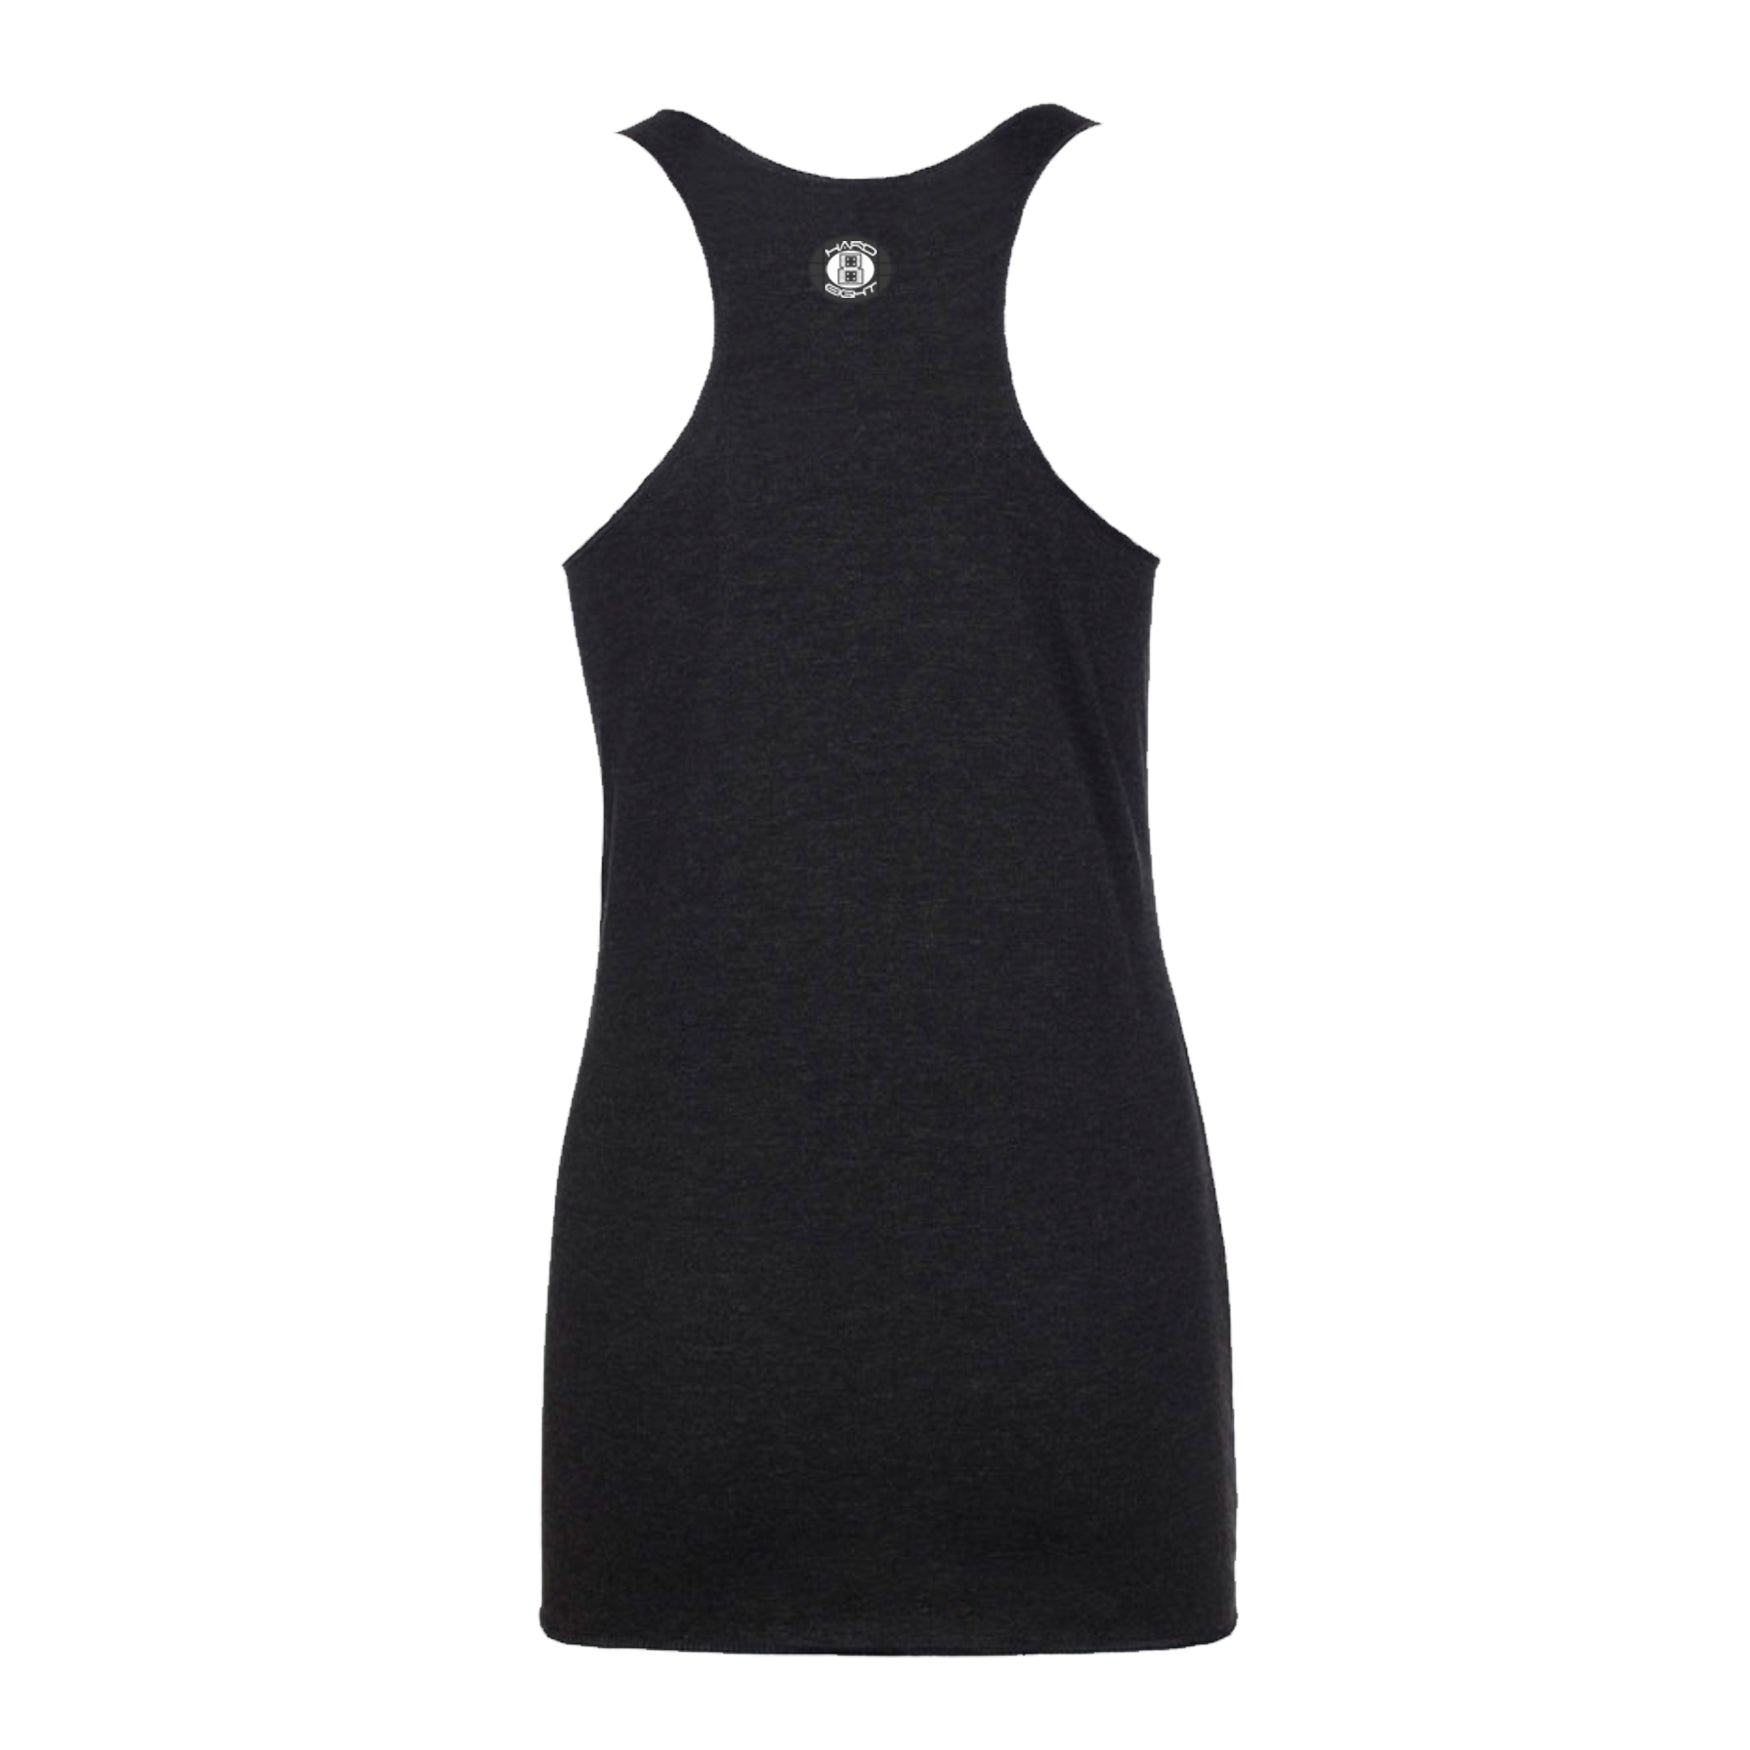 "WOMEN'S ""ROSE SKULL""  RAW EDGE RACER BACK TANK Black Heather"